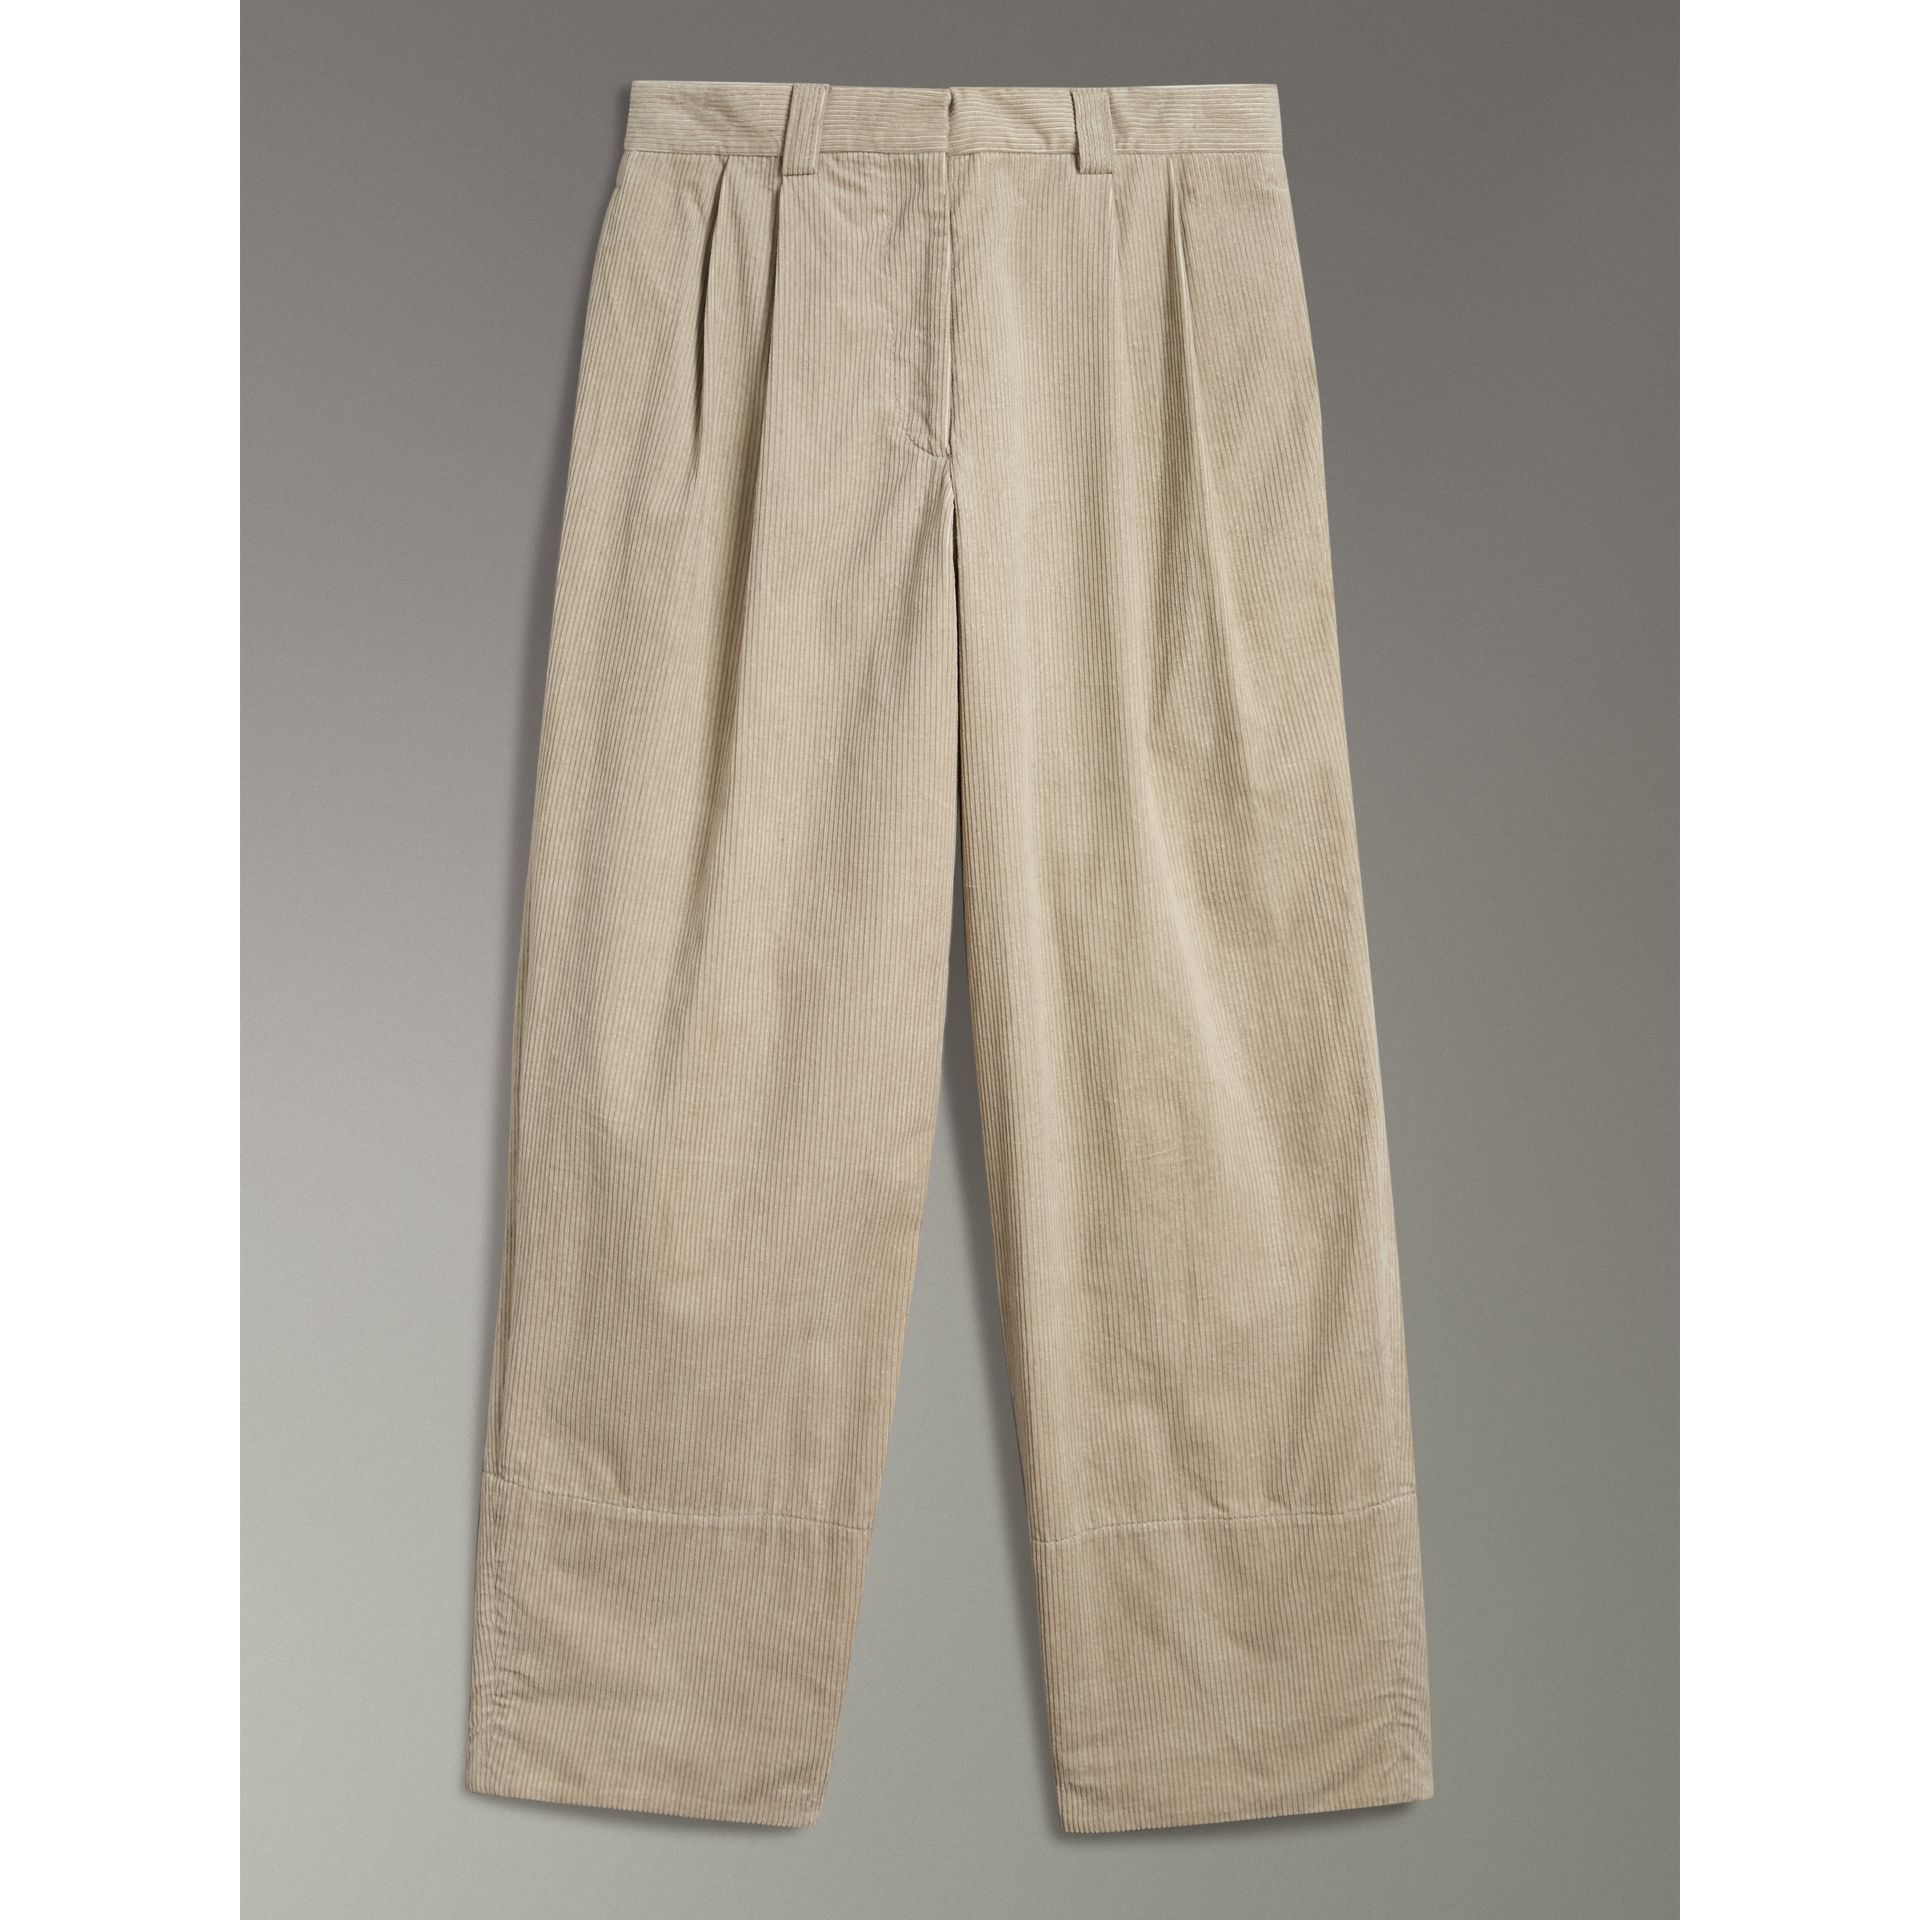 Roll-up Cuff Cotton Corduroy Trousers in Stone - Women | Burberry United Kingdom - gallery image 3